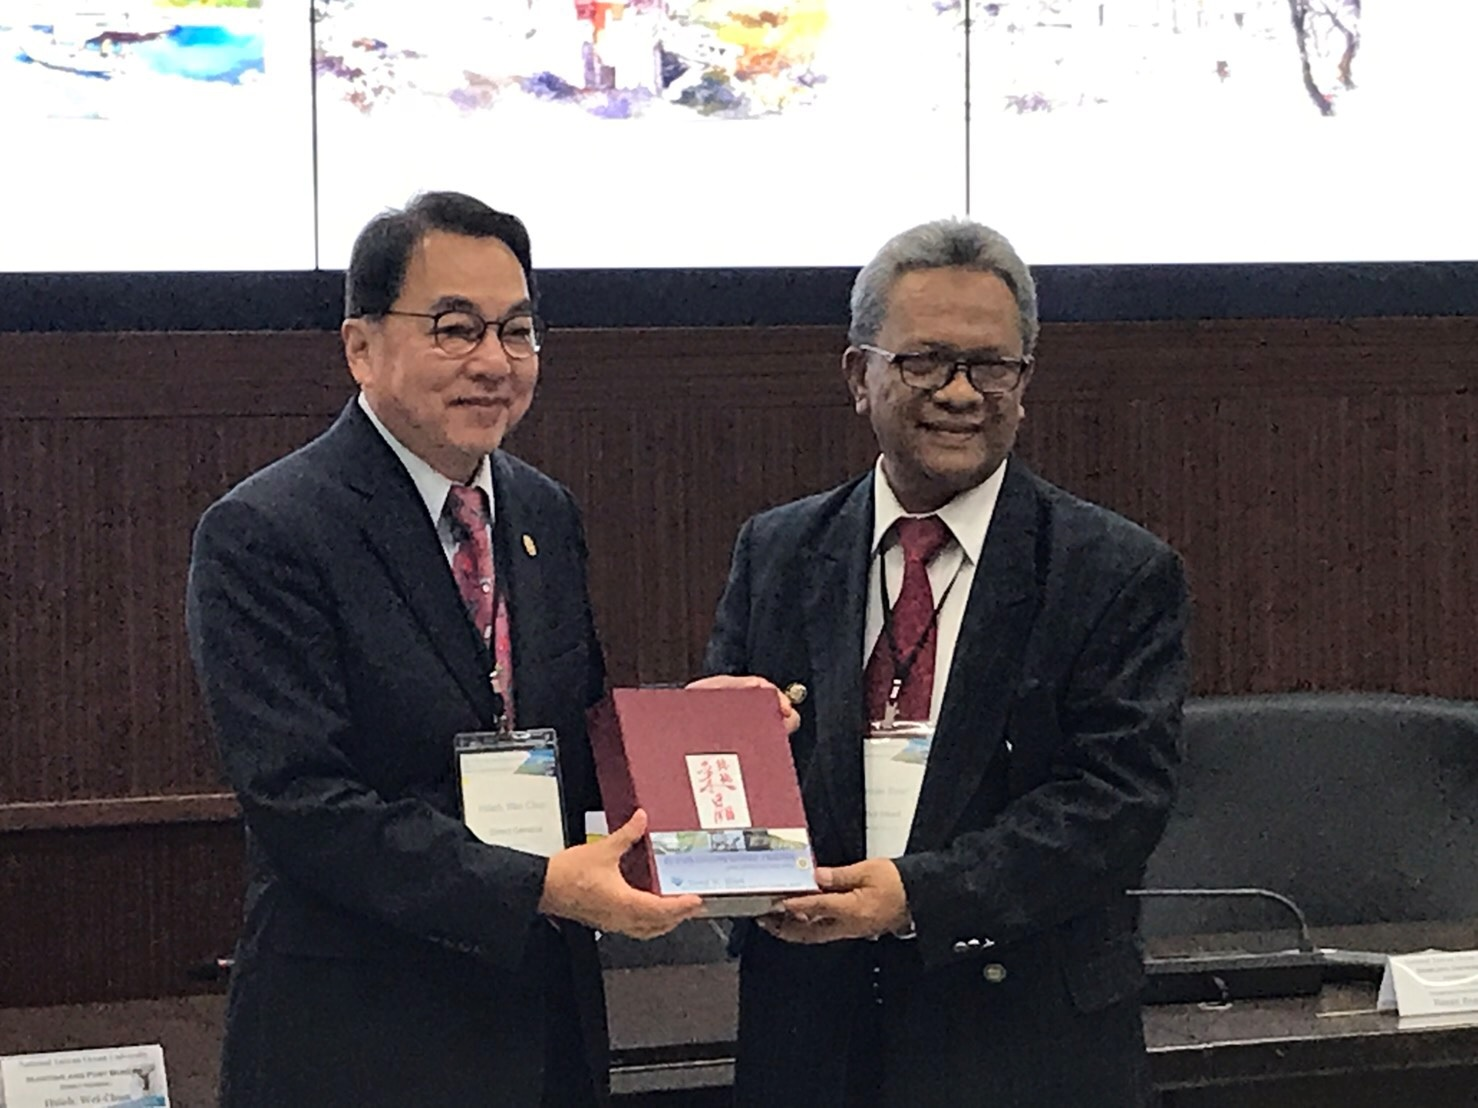 MPB Director-General David Hsieh and Deputy Director of the Joint Transportation Center of Sriwijaya University of Indonesia Mr. Basri presented each other with souvenirs.